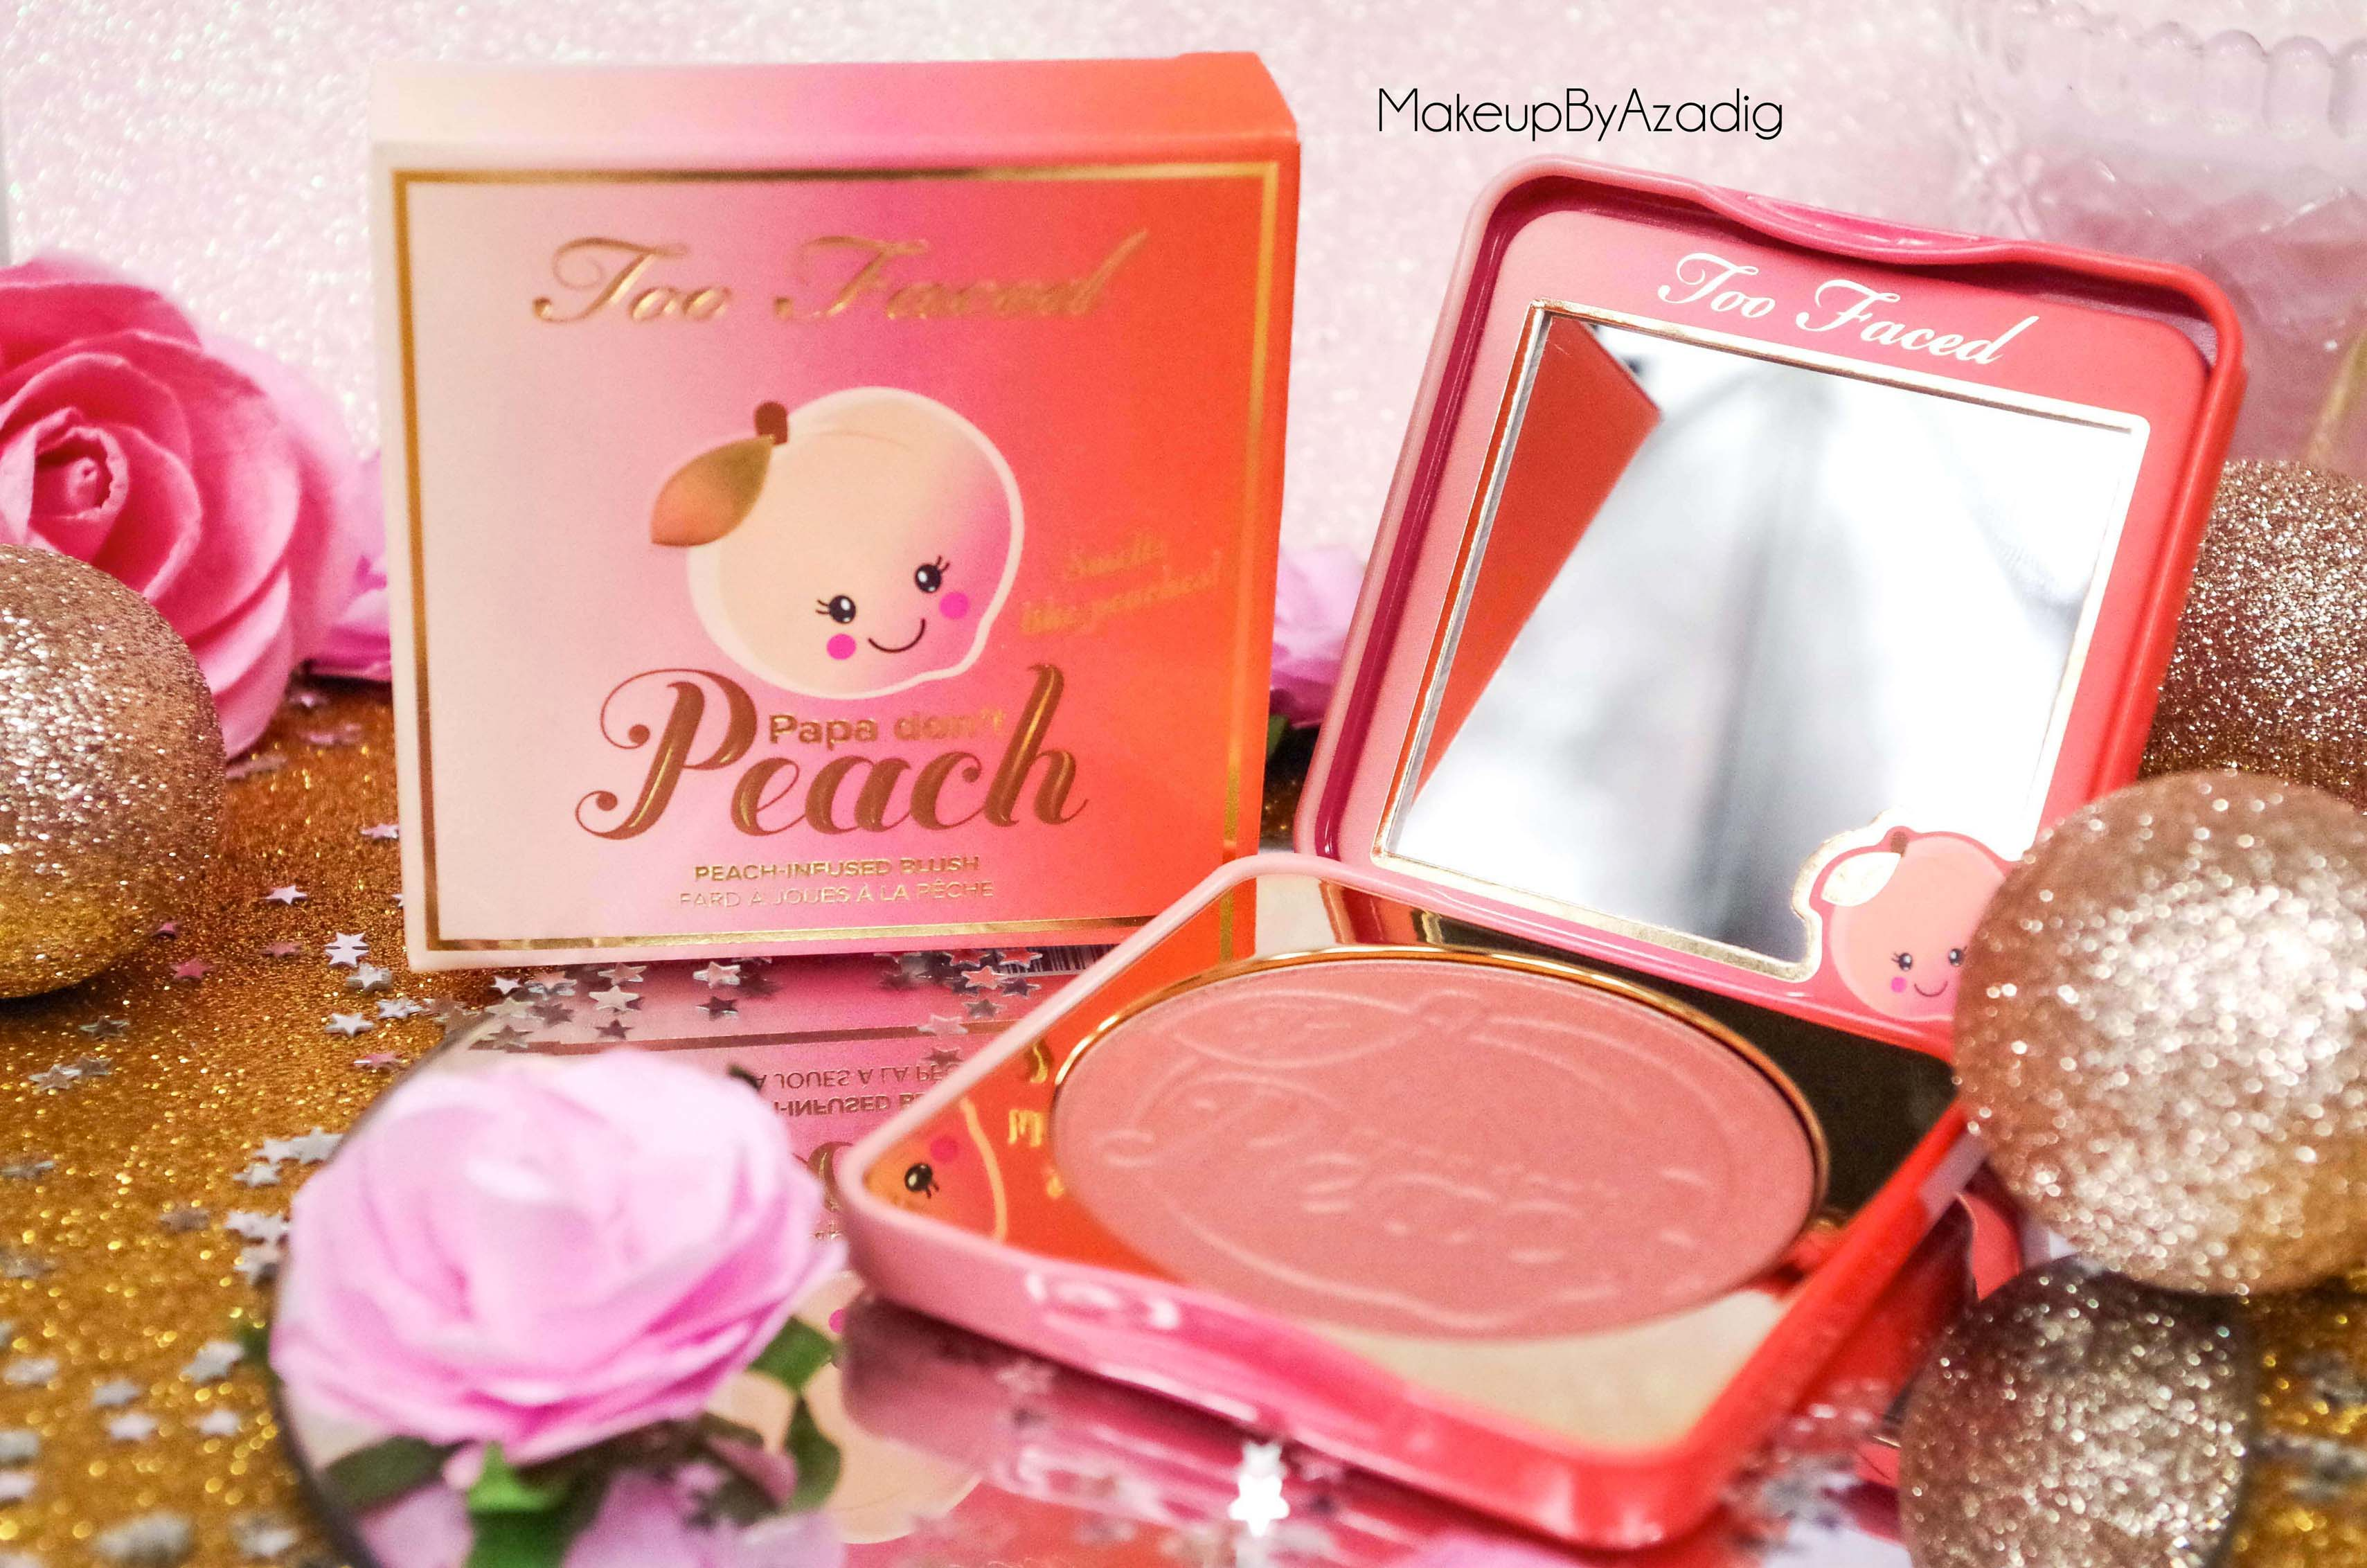 review-nouveau-blush-papa-dont-peach-too-faced-sephora-ete-printemps-paris-sweet-peach-swatch-avis-makeupbyazadig-florida-2